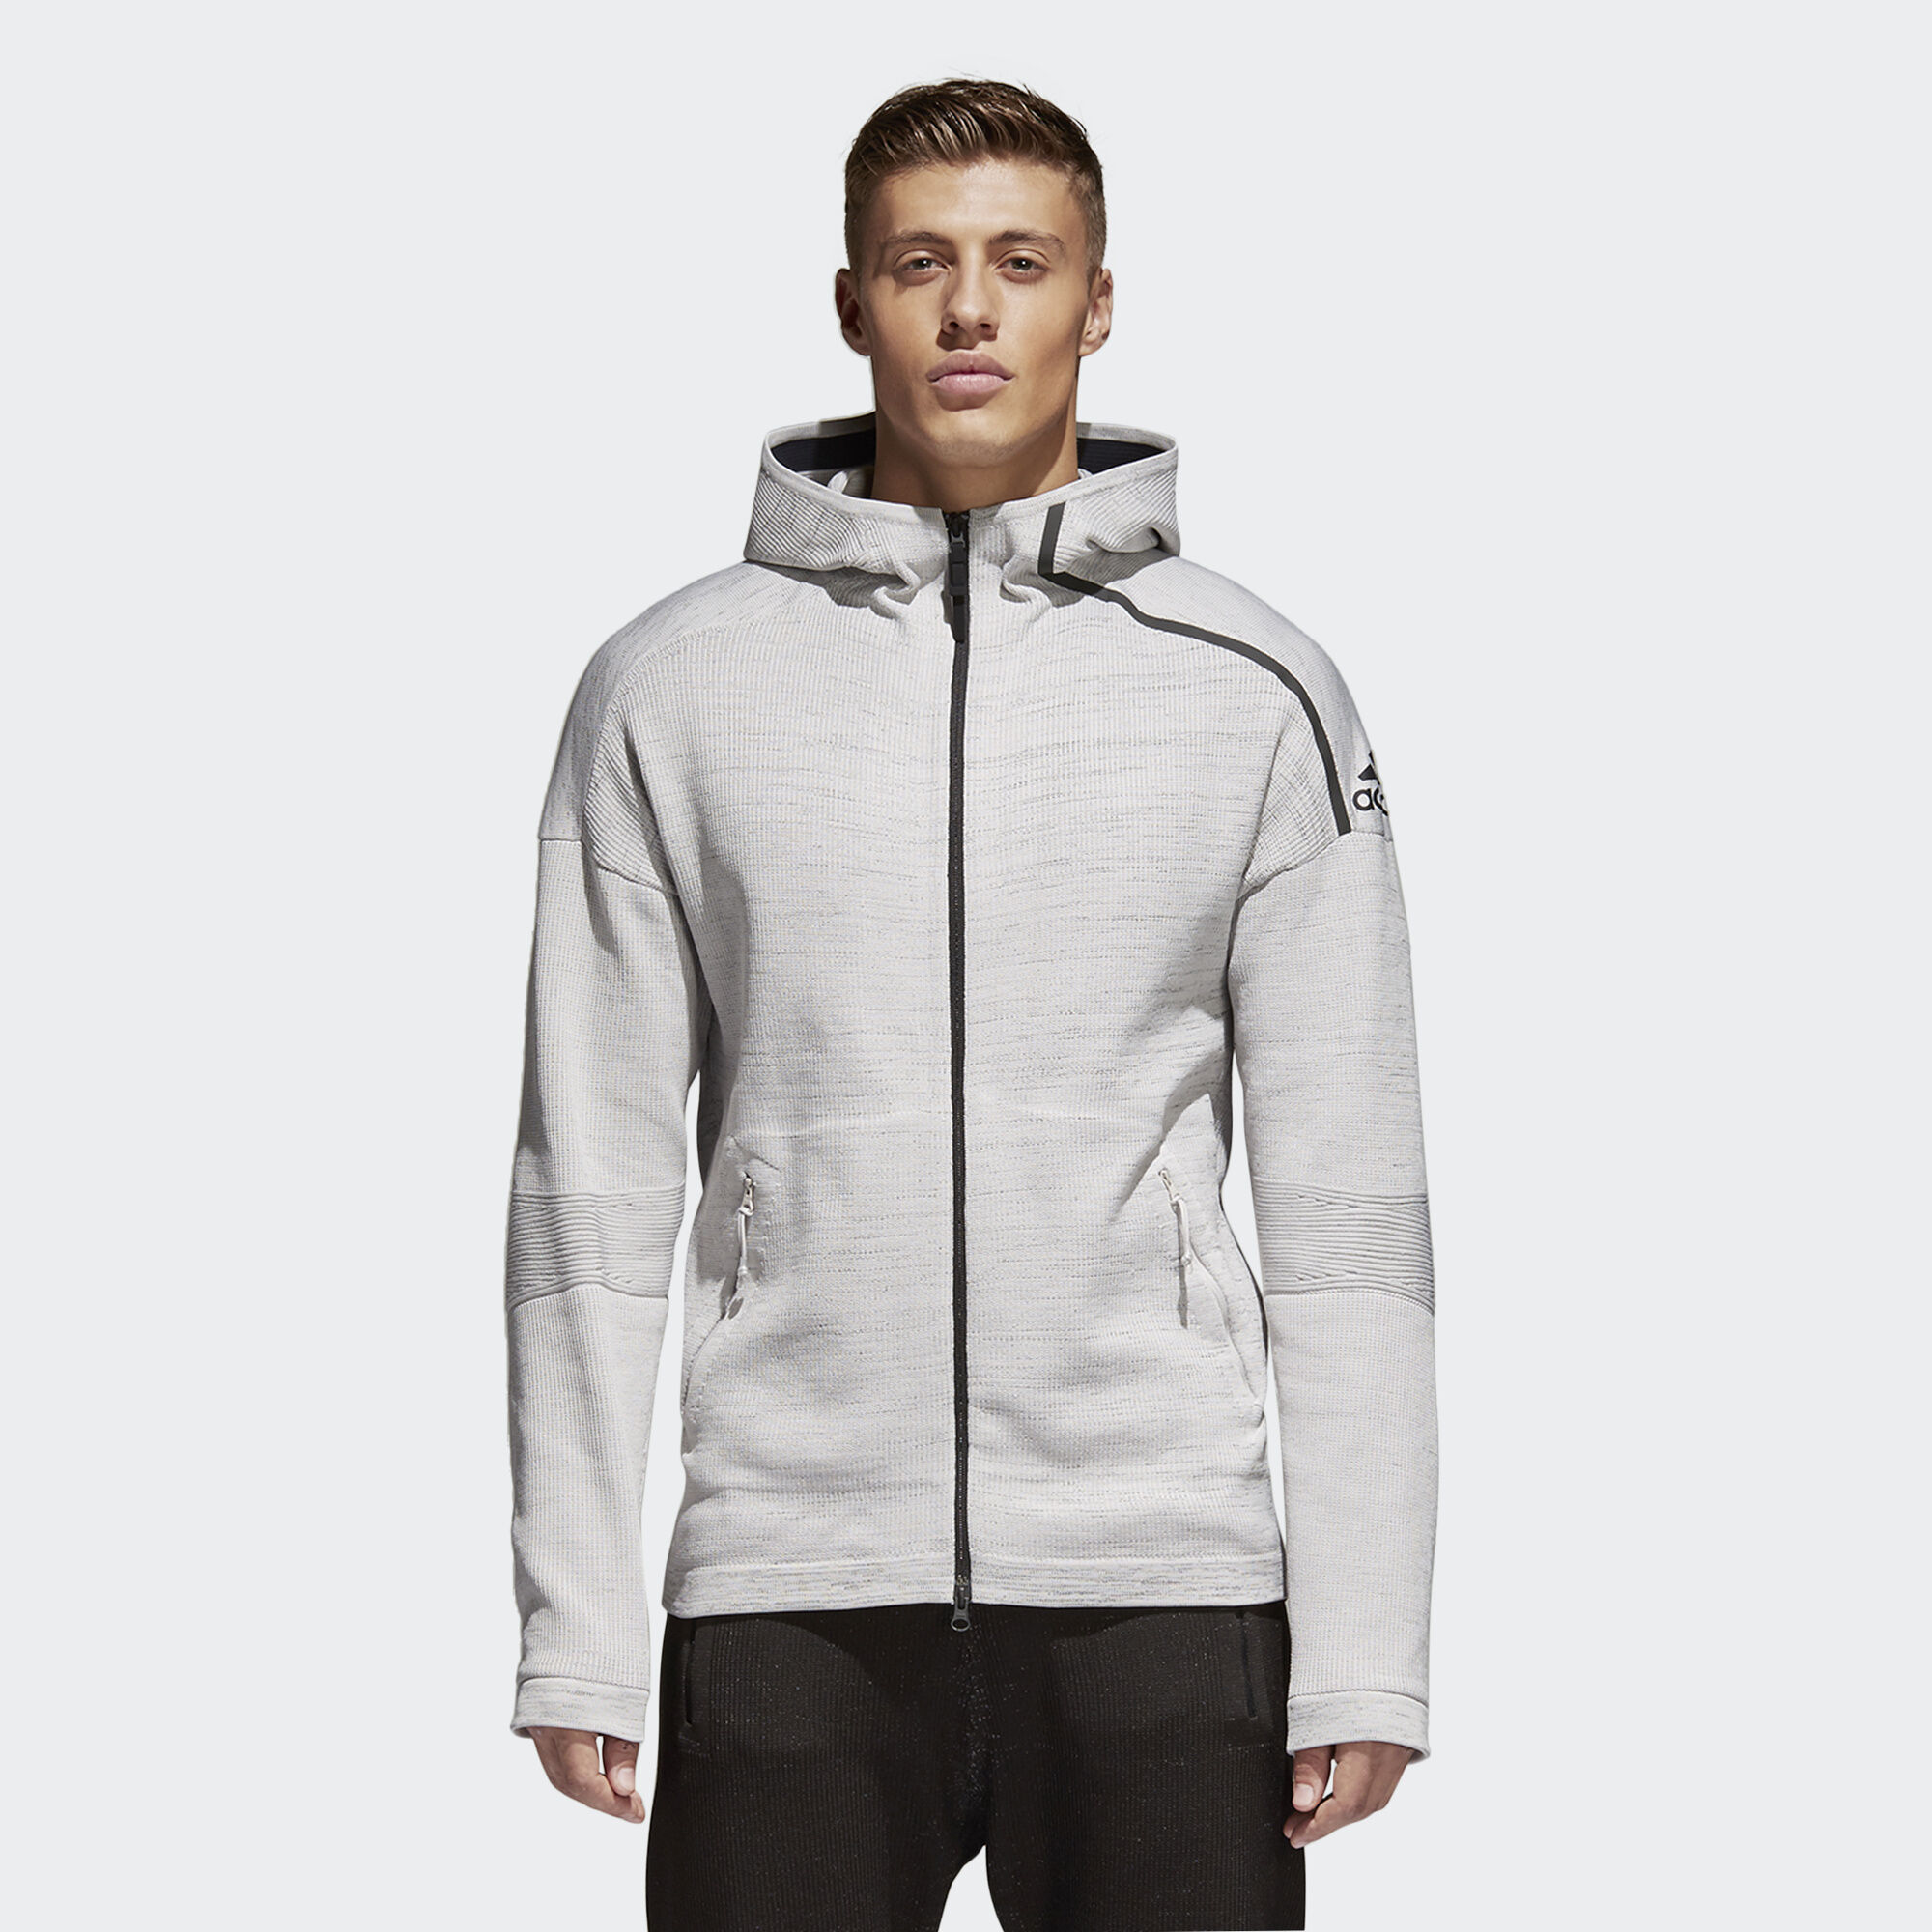 adidas - adidas Z.N.E. Primeknit Hoodie Grey/Chalk Pearl/Black CF0636. Men  Athletics